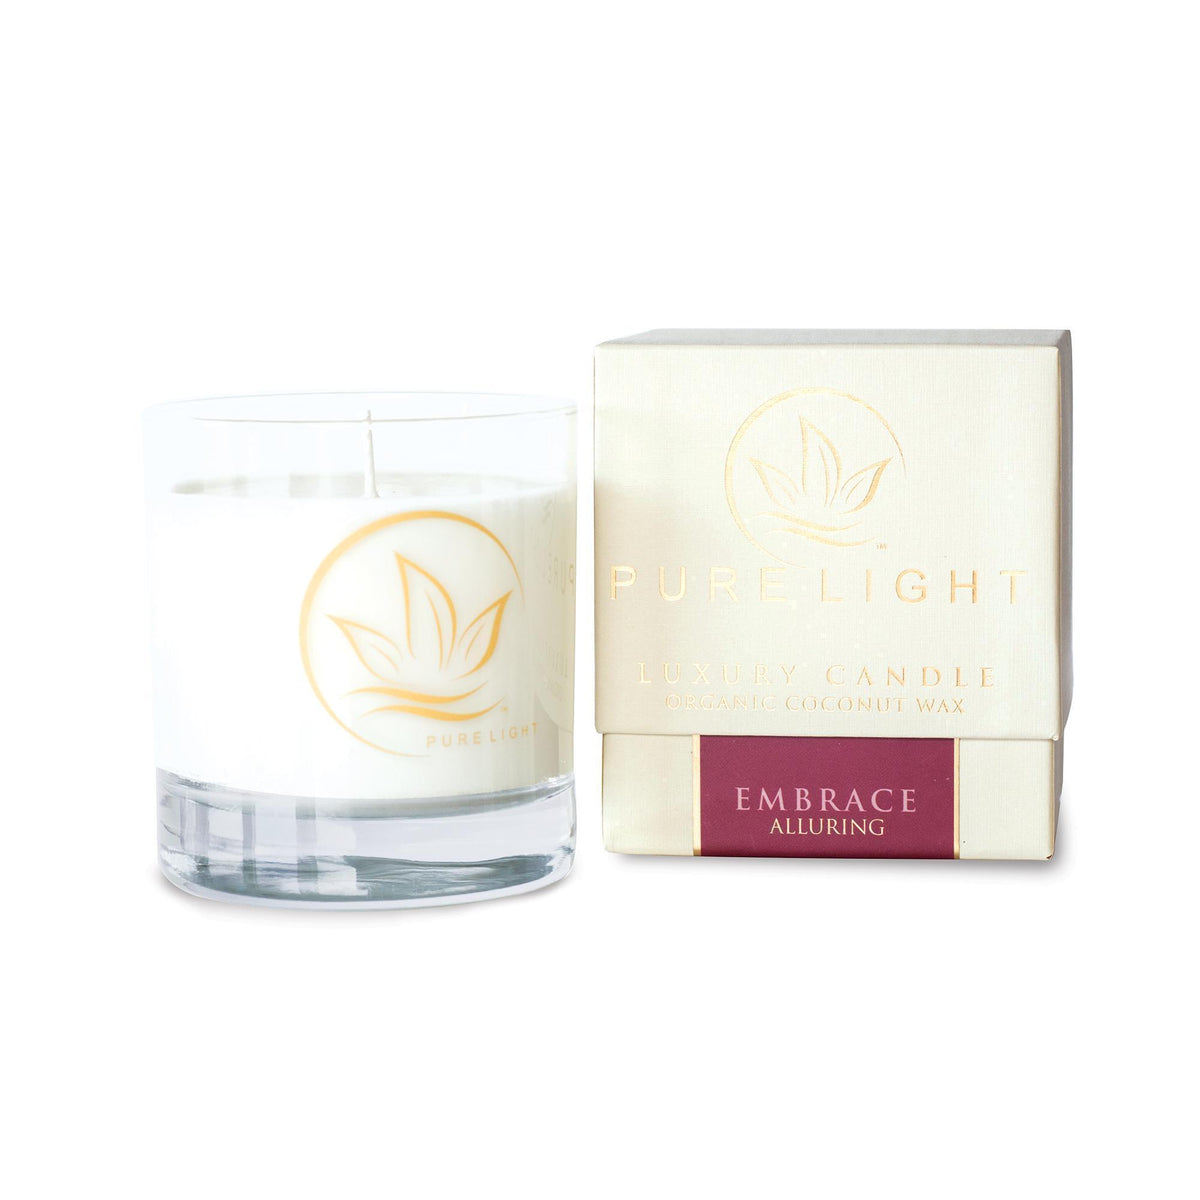 Home & Linens Pure Light Luxury Candle / Embrace / 7.5oz